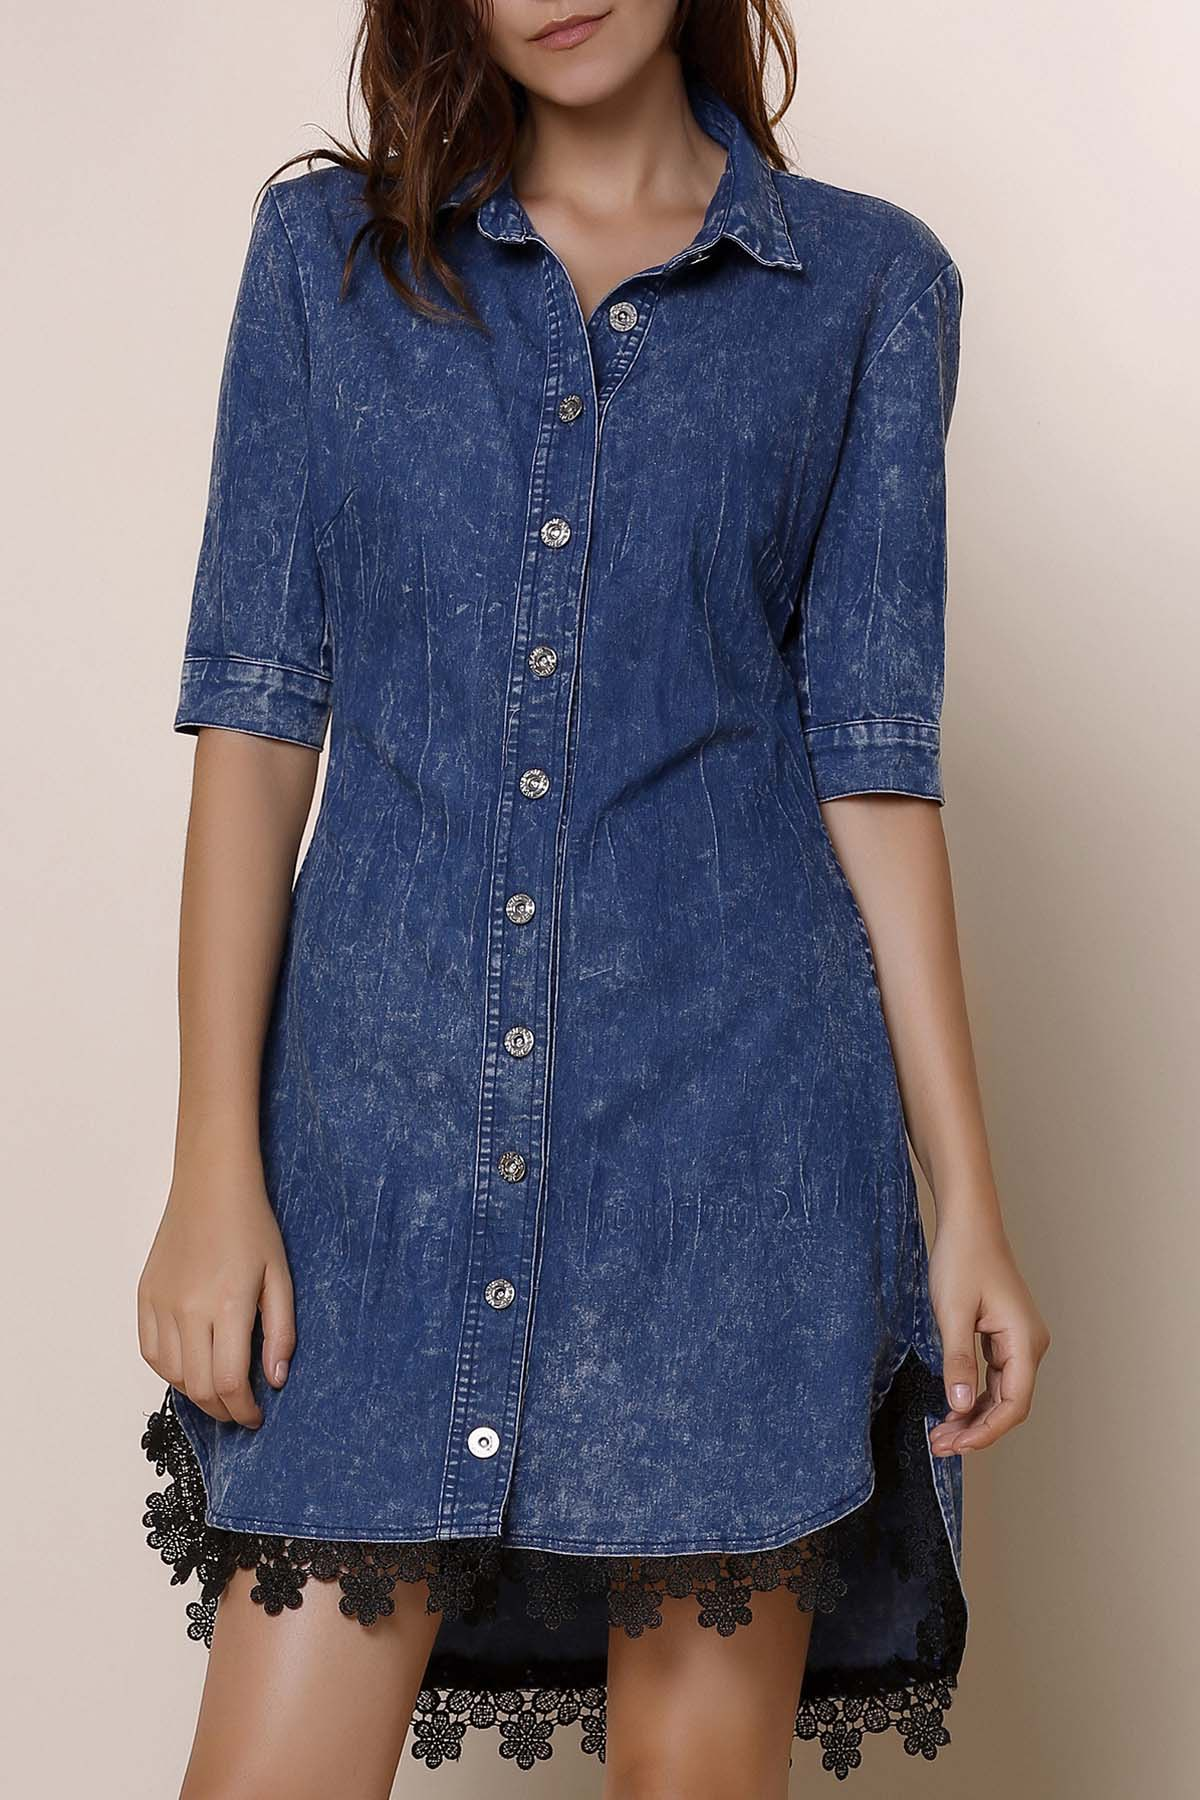 Sexy Half Sleeve Asymmetrical Laciness Women's Denim Dress - BLUE M